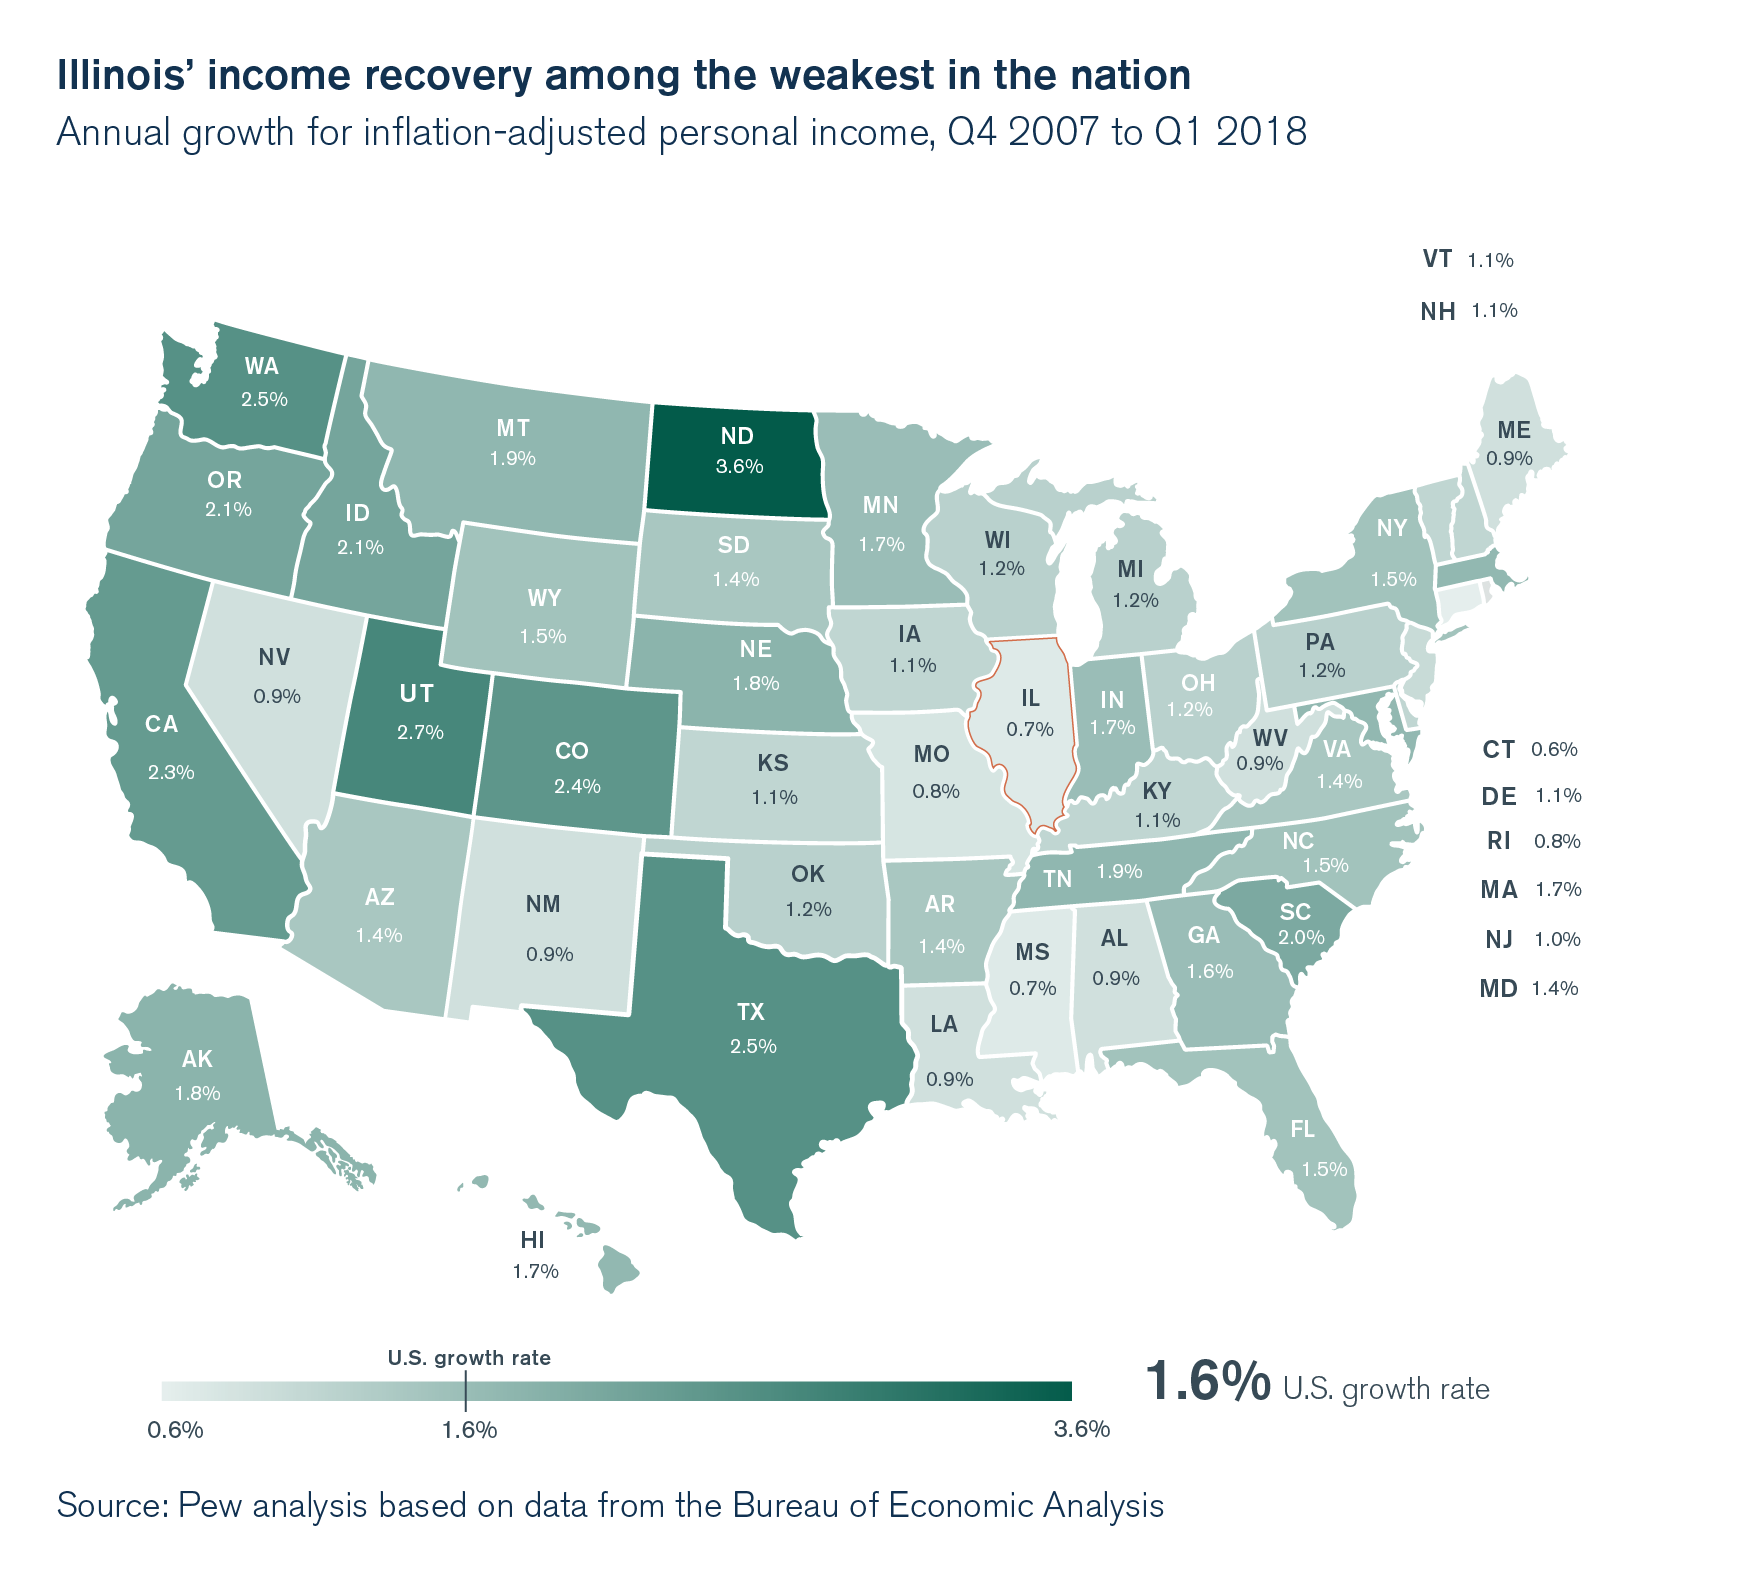 Illinois' income recovery among the weakest in the nation